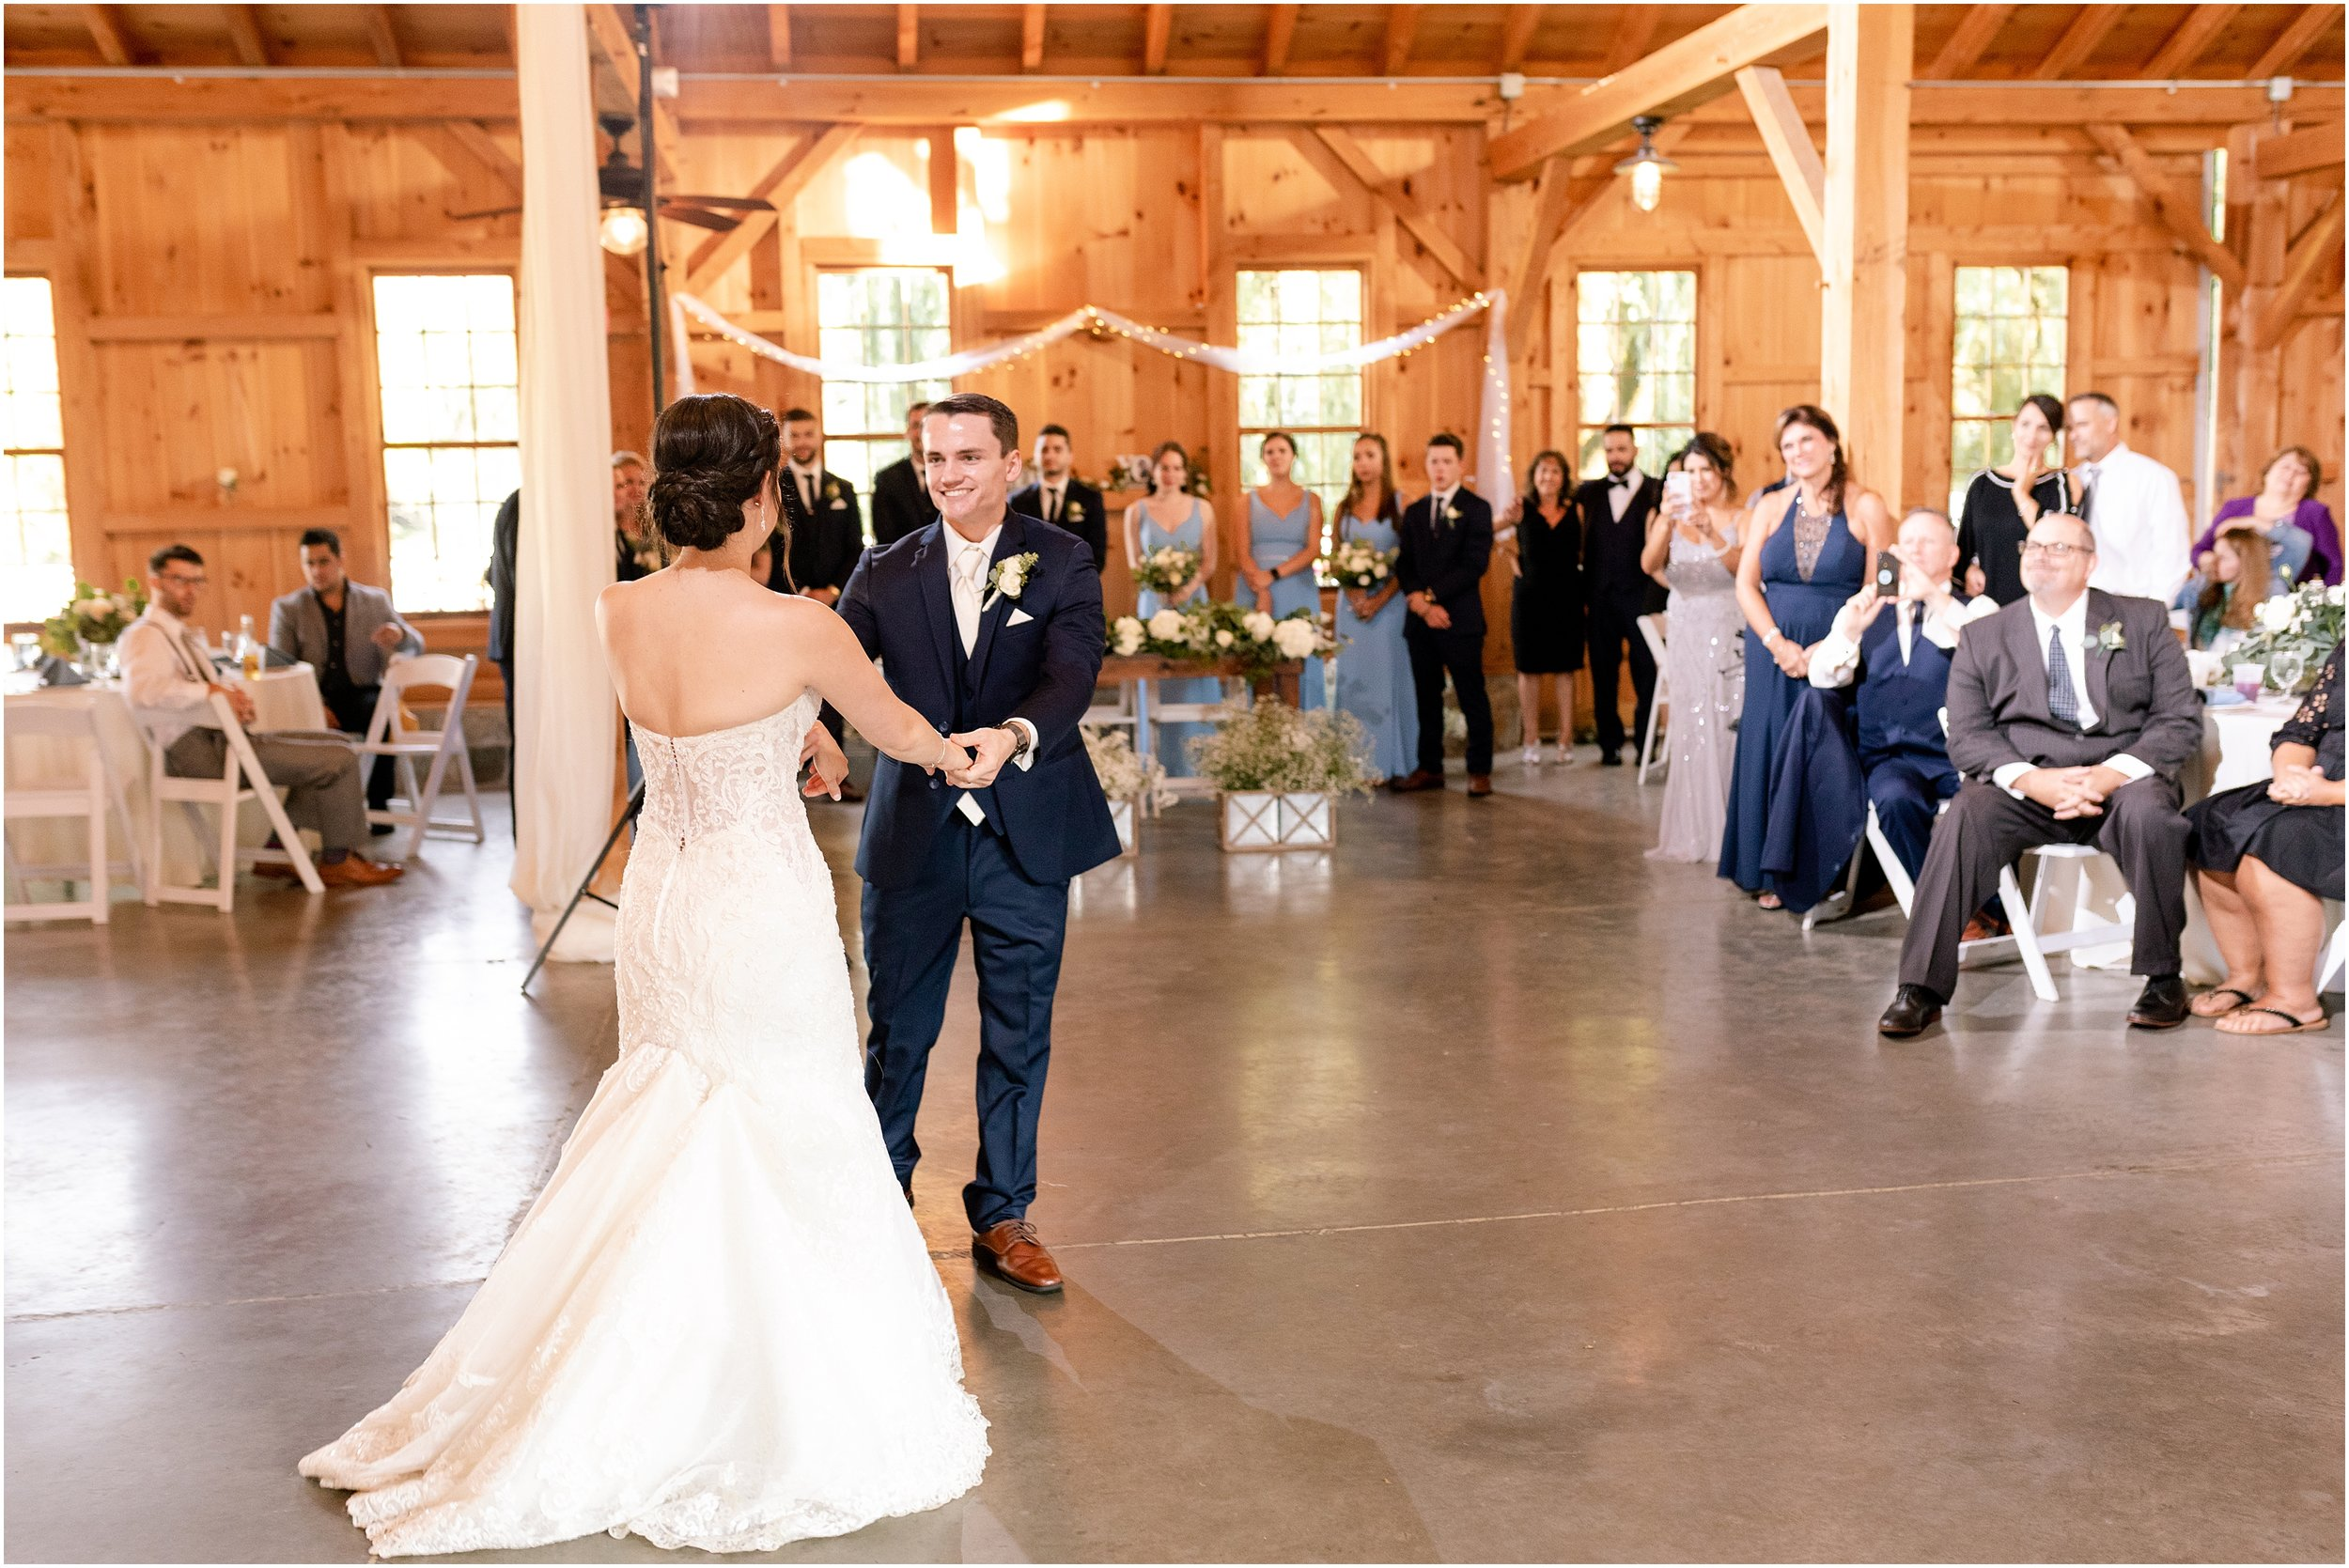 hannah leigh photography Pond View Farm Wedding White Hall MD_3666.jpg